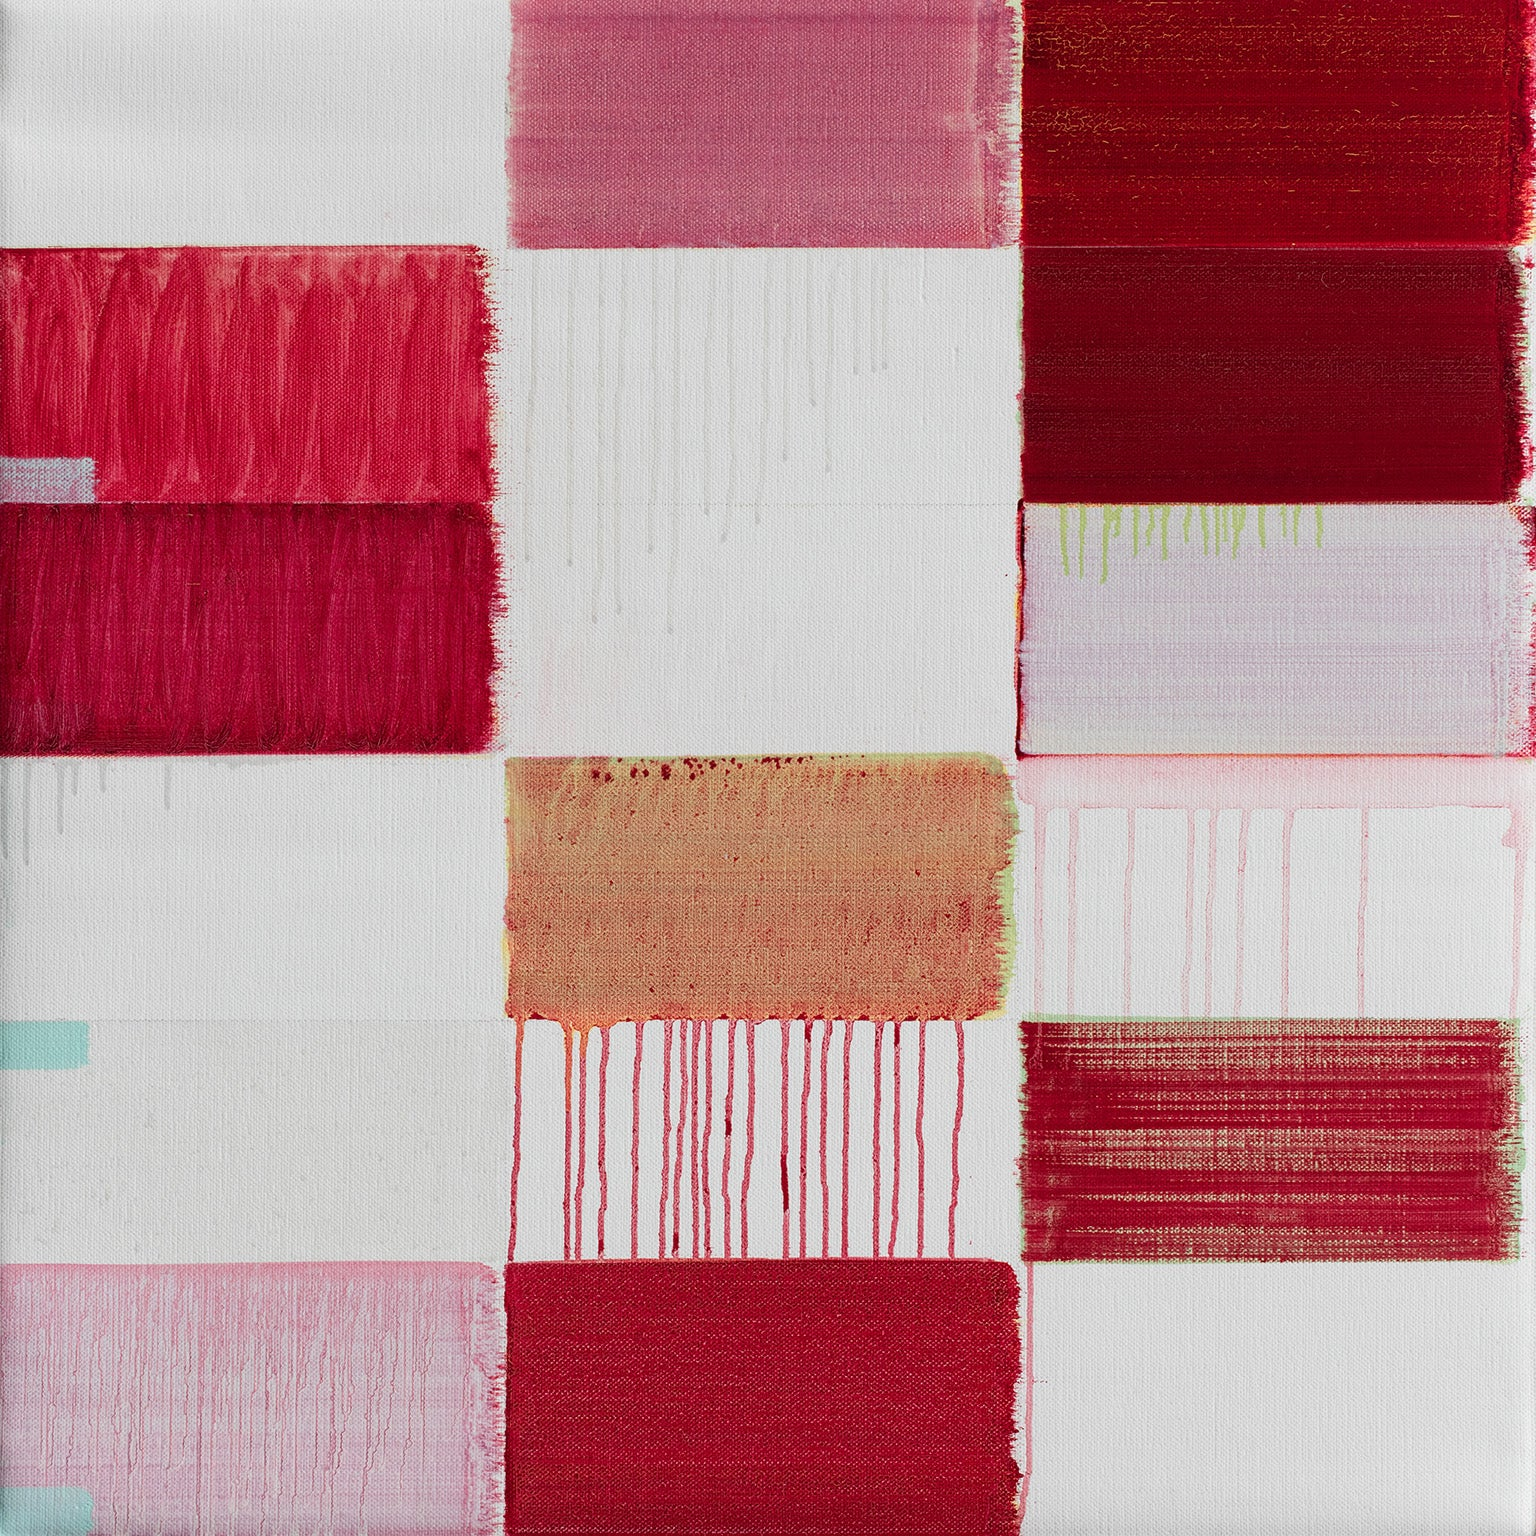 Untitled (1) - Geometric Abstract Oil Painting with Red